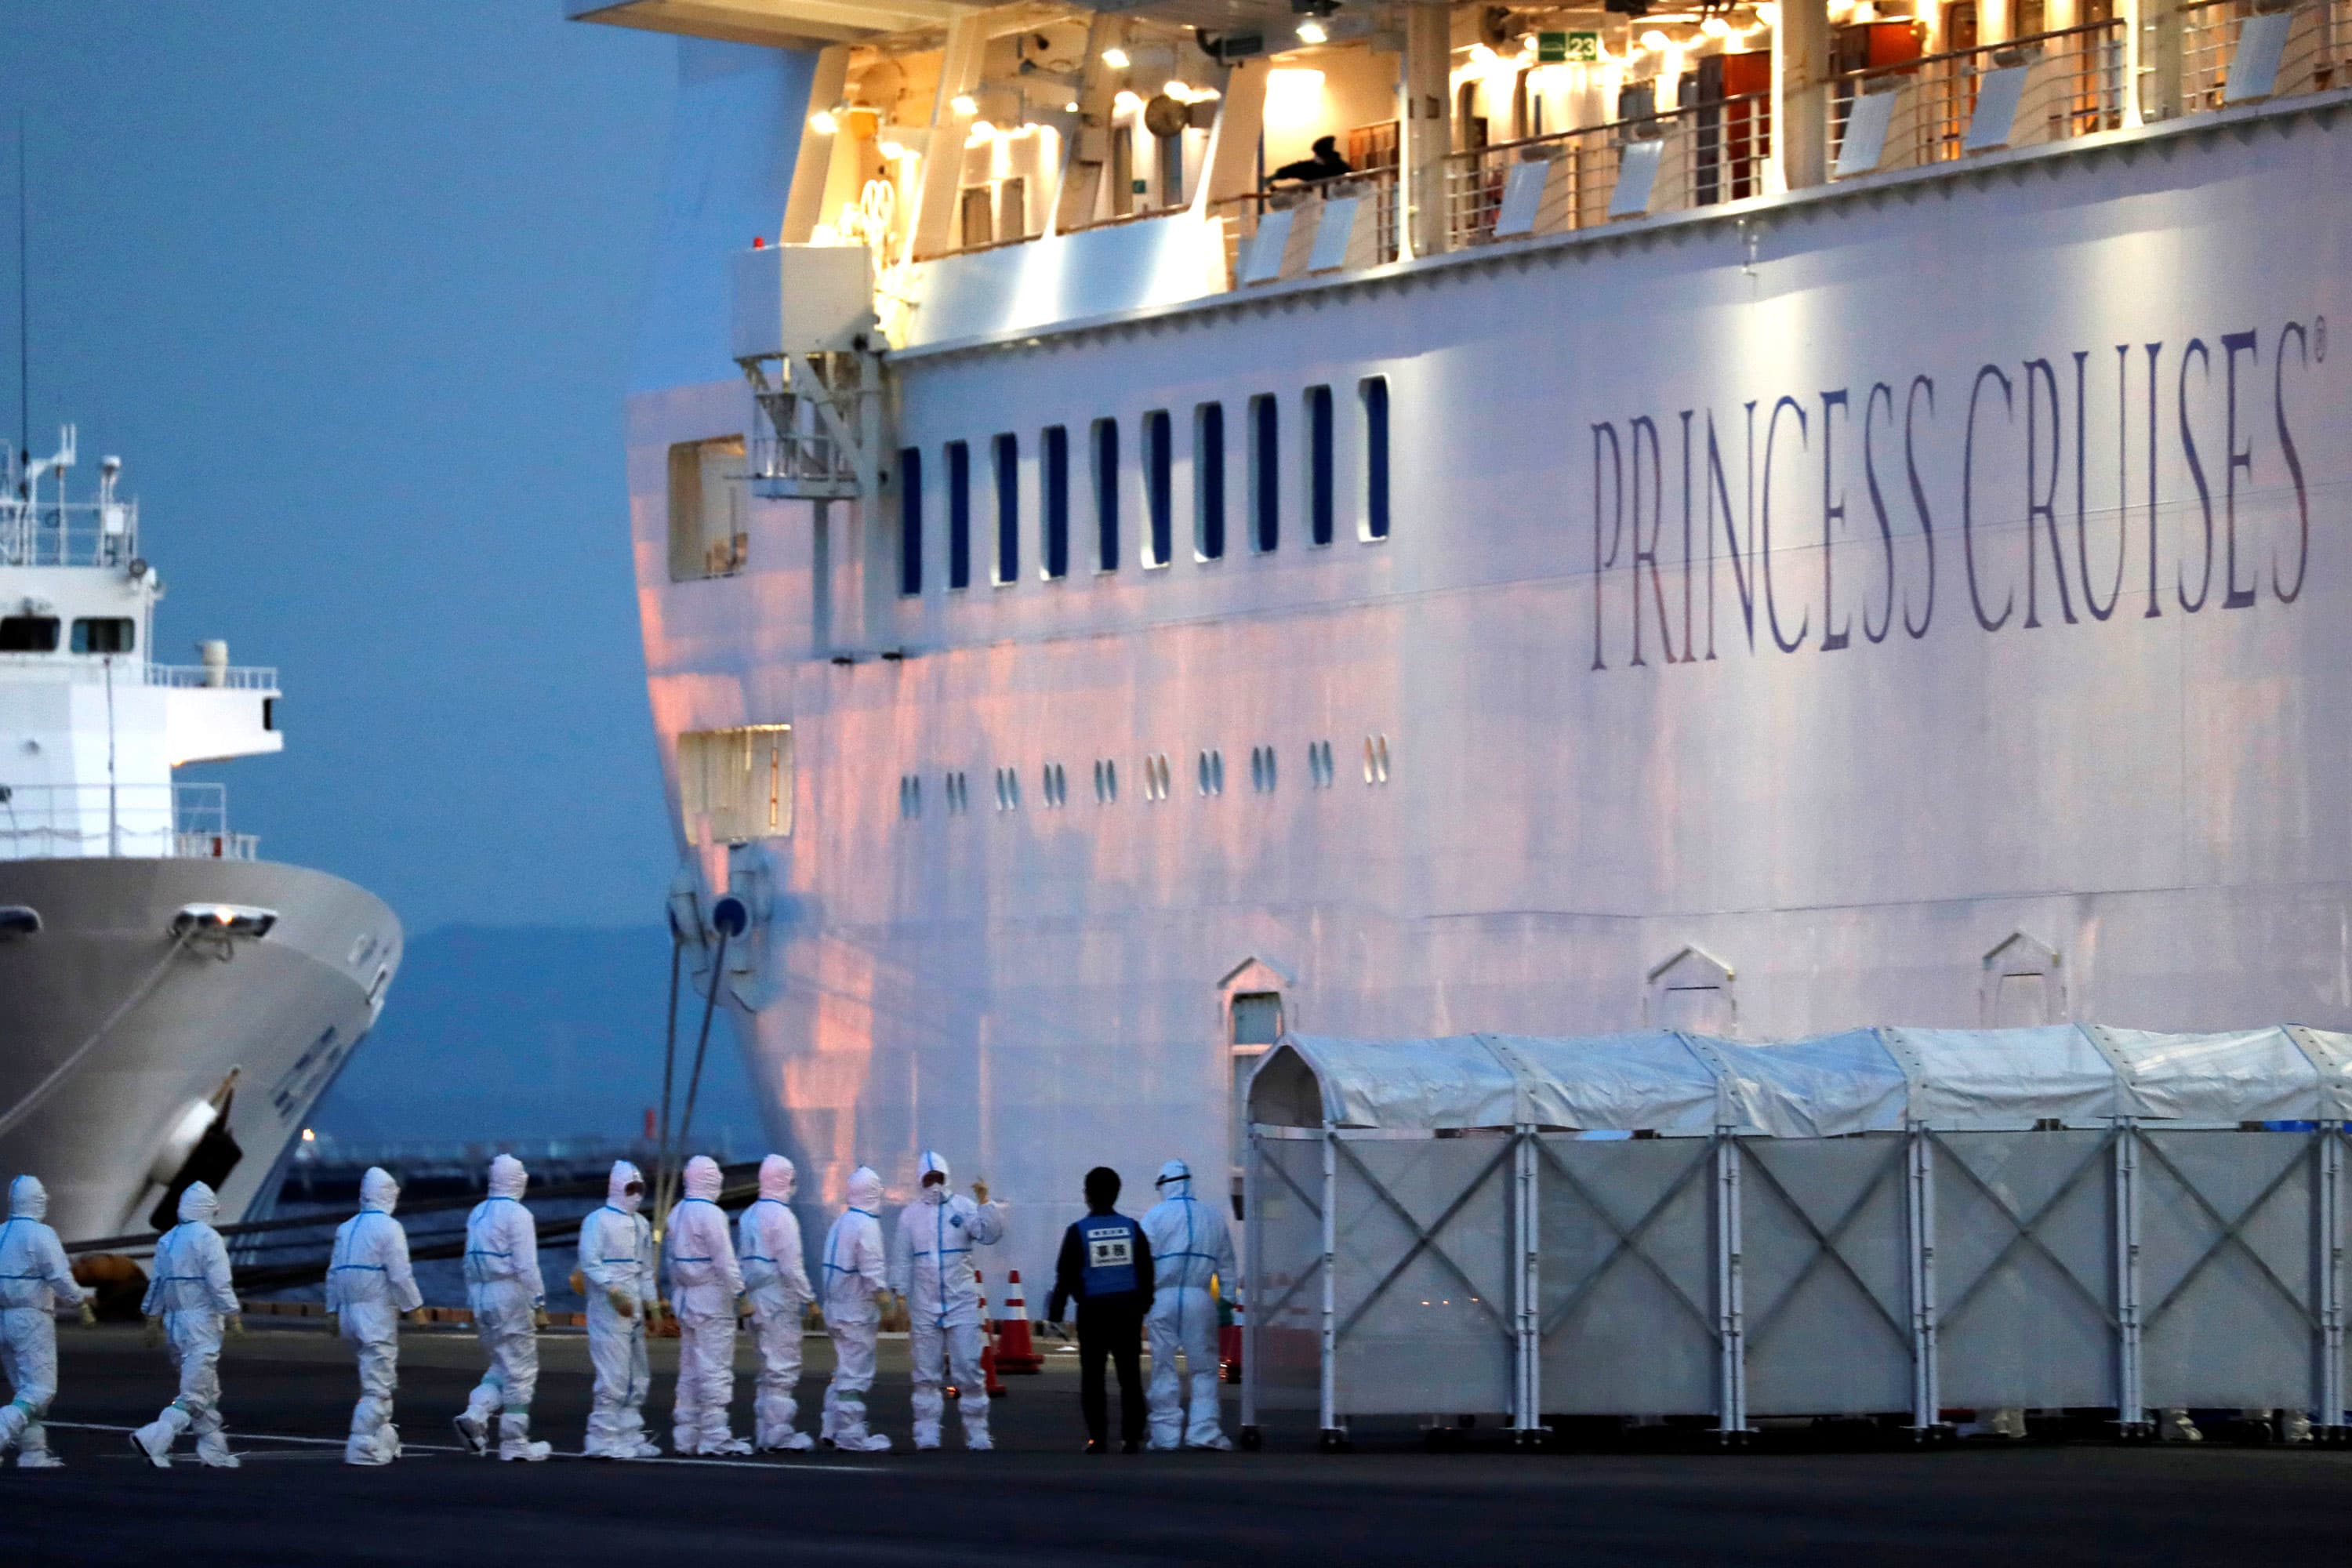 coronavirus survived in Princess Cruise cabins up to 17 days after passengers left